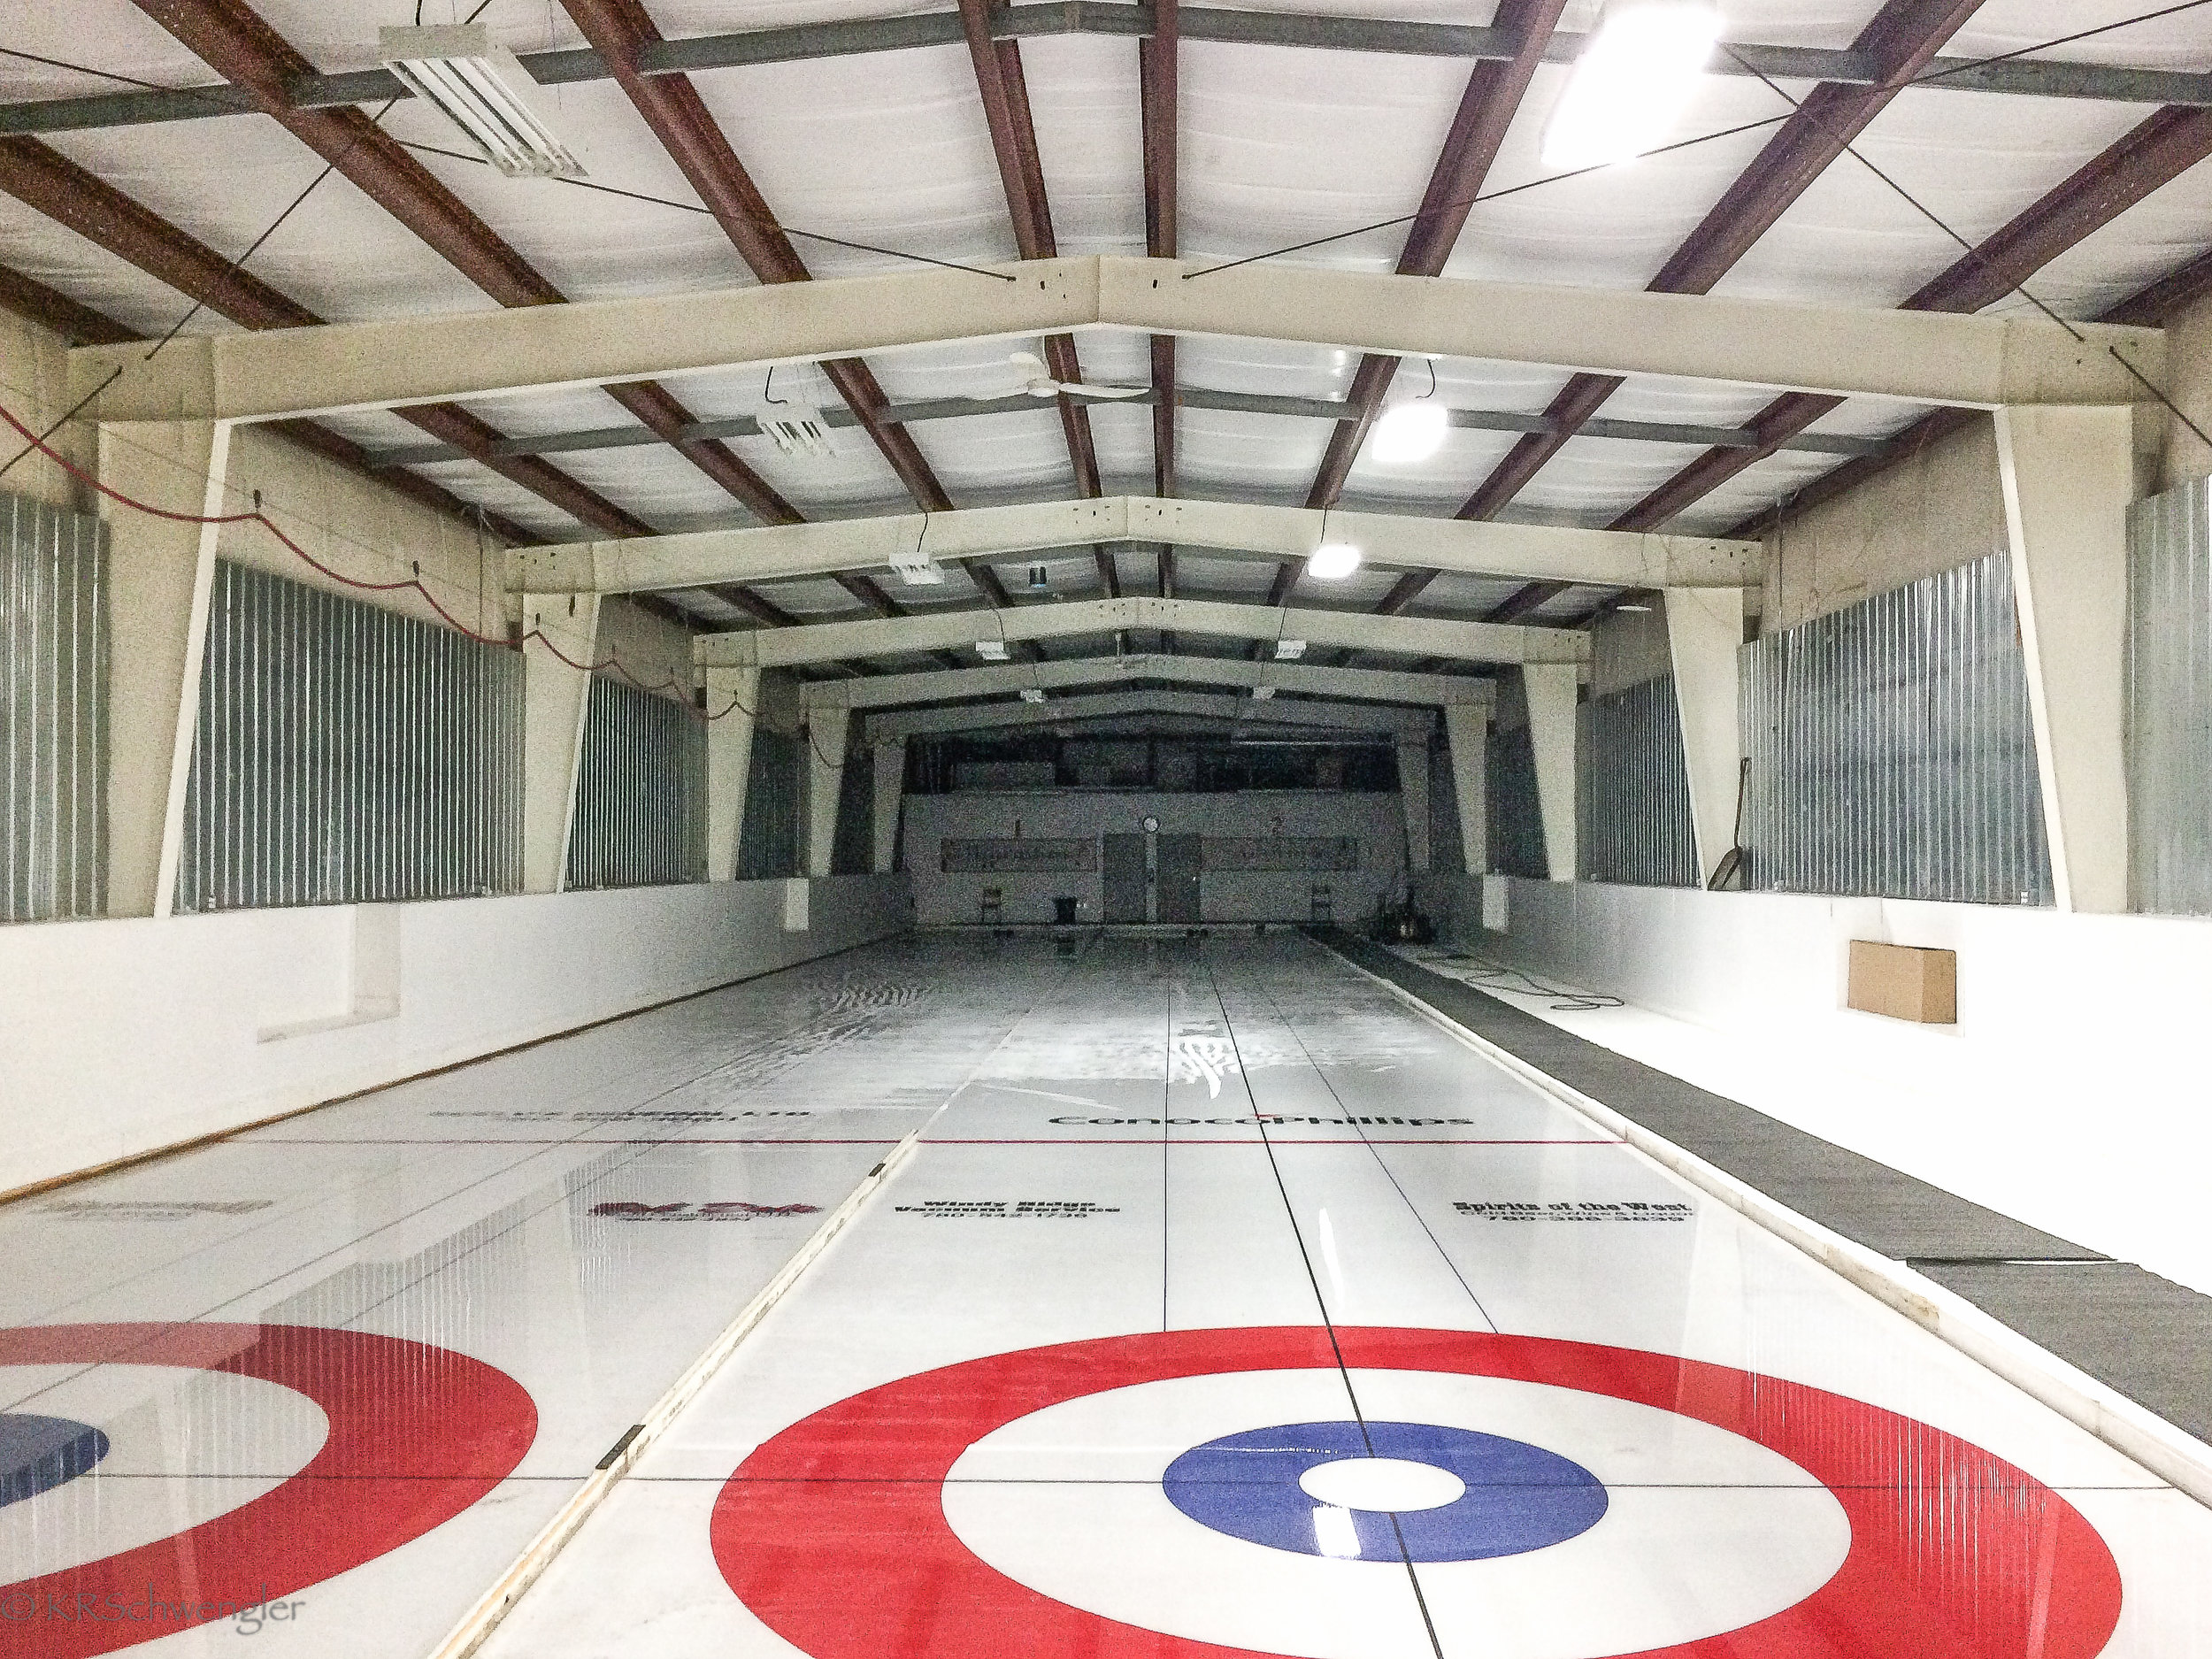 Curling Starts Late November - Round Robin! Junior Curling! More info on our website!